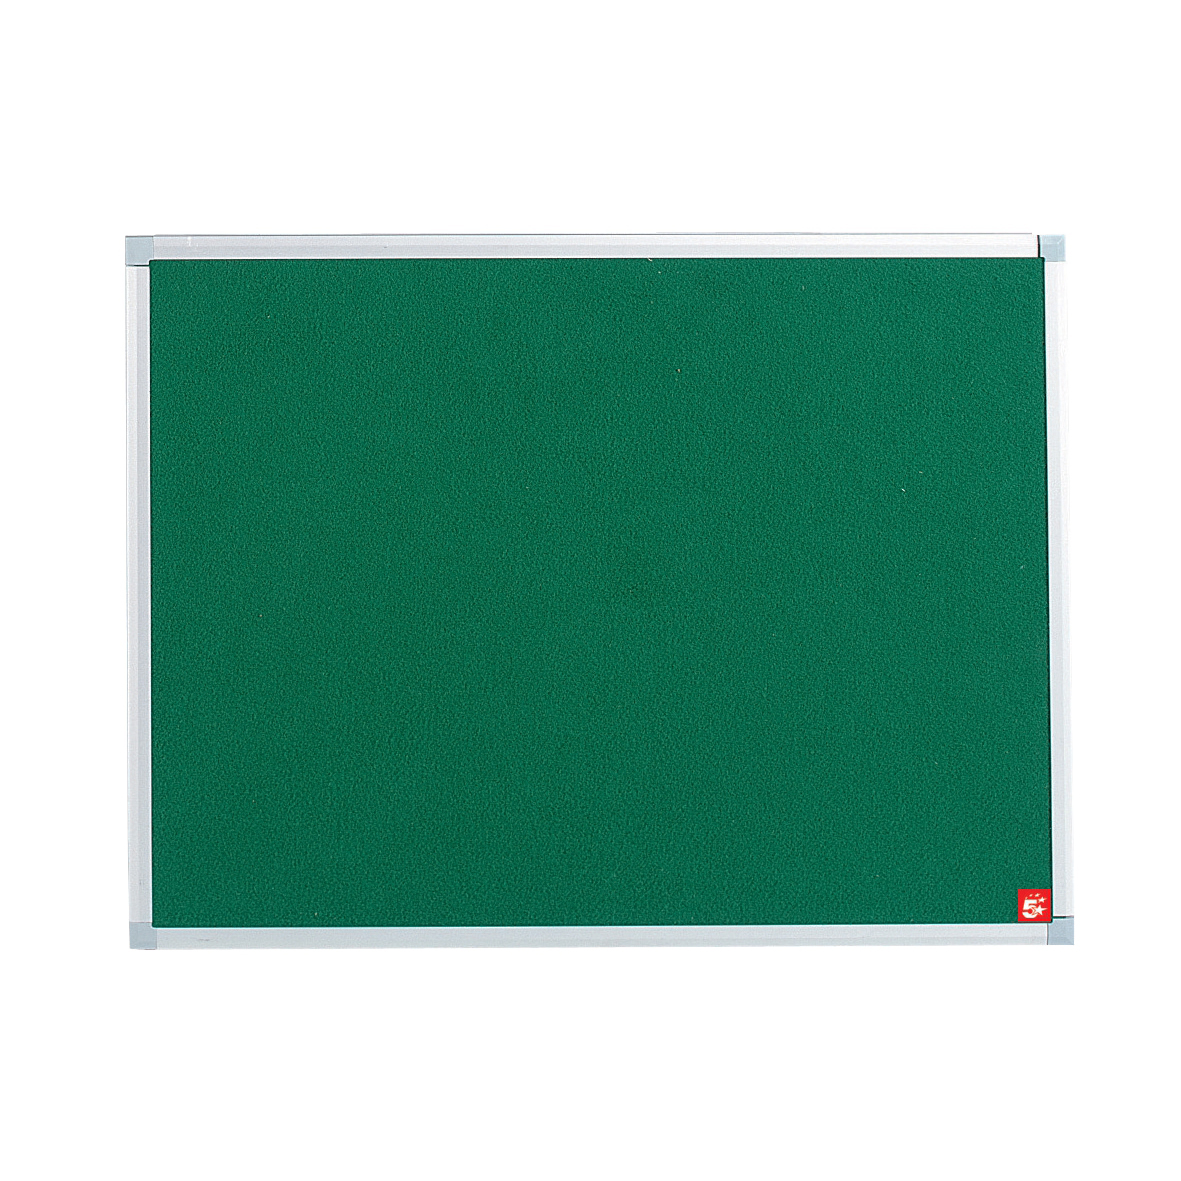 5 Star Office Noticeboard with Fixings and Aluminium Trim W900xH600mm Green